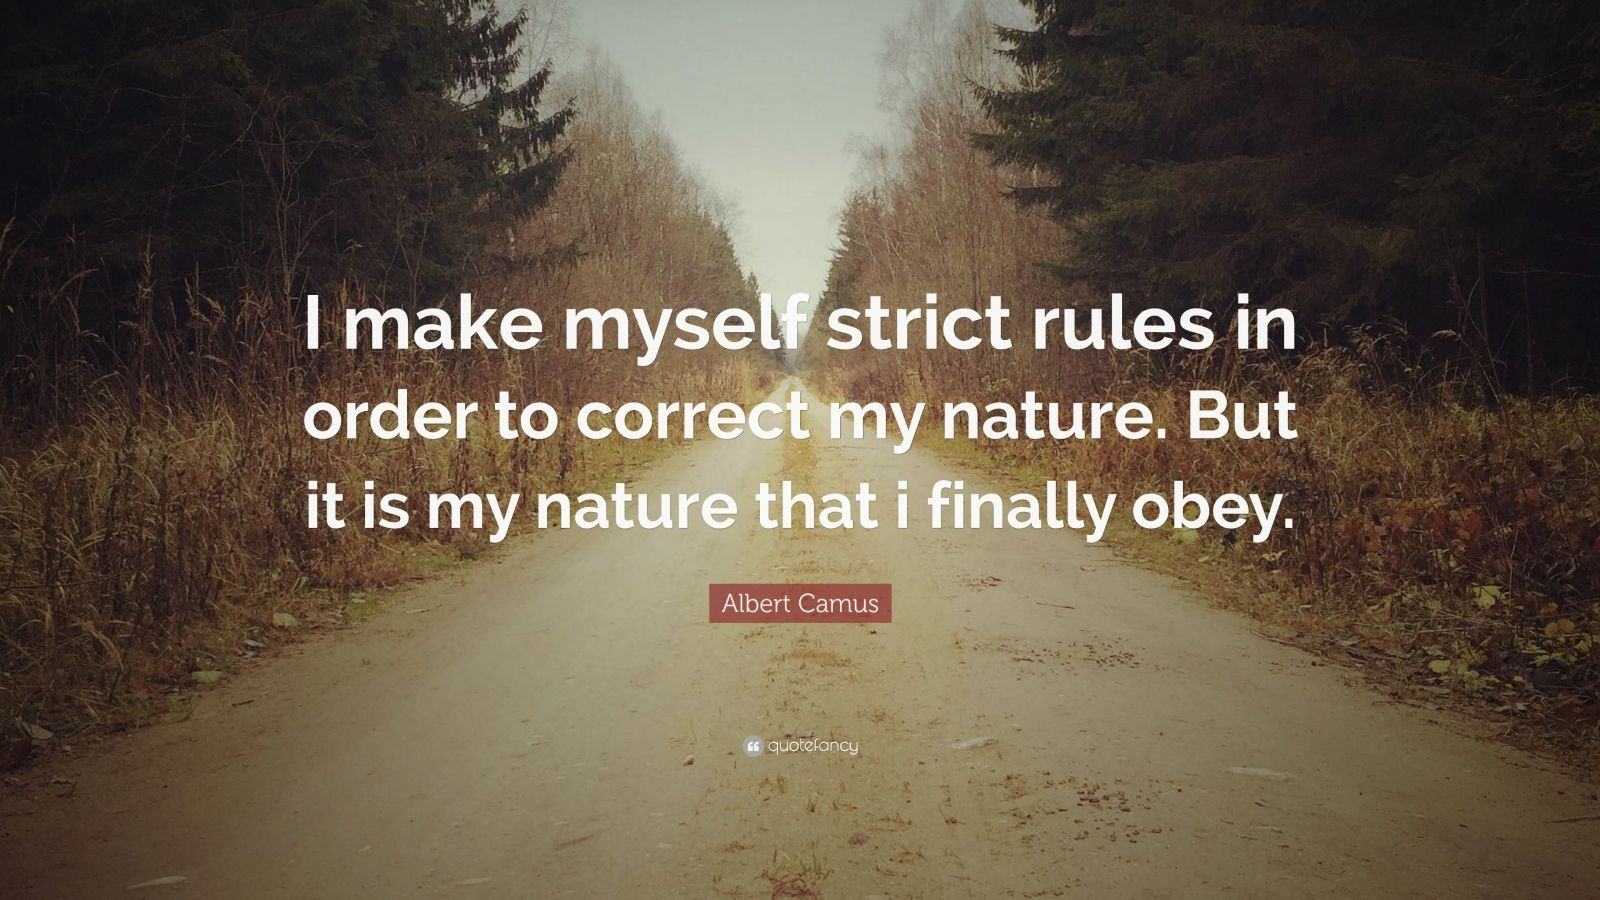 """Albert Camus Quote: """"I make myself strict rules in order to correct my nature. But it is my nature that i finally obey."""""""